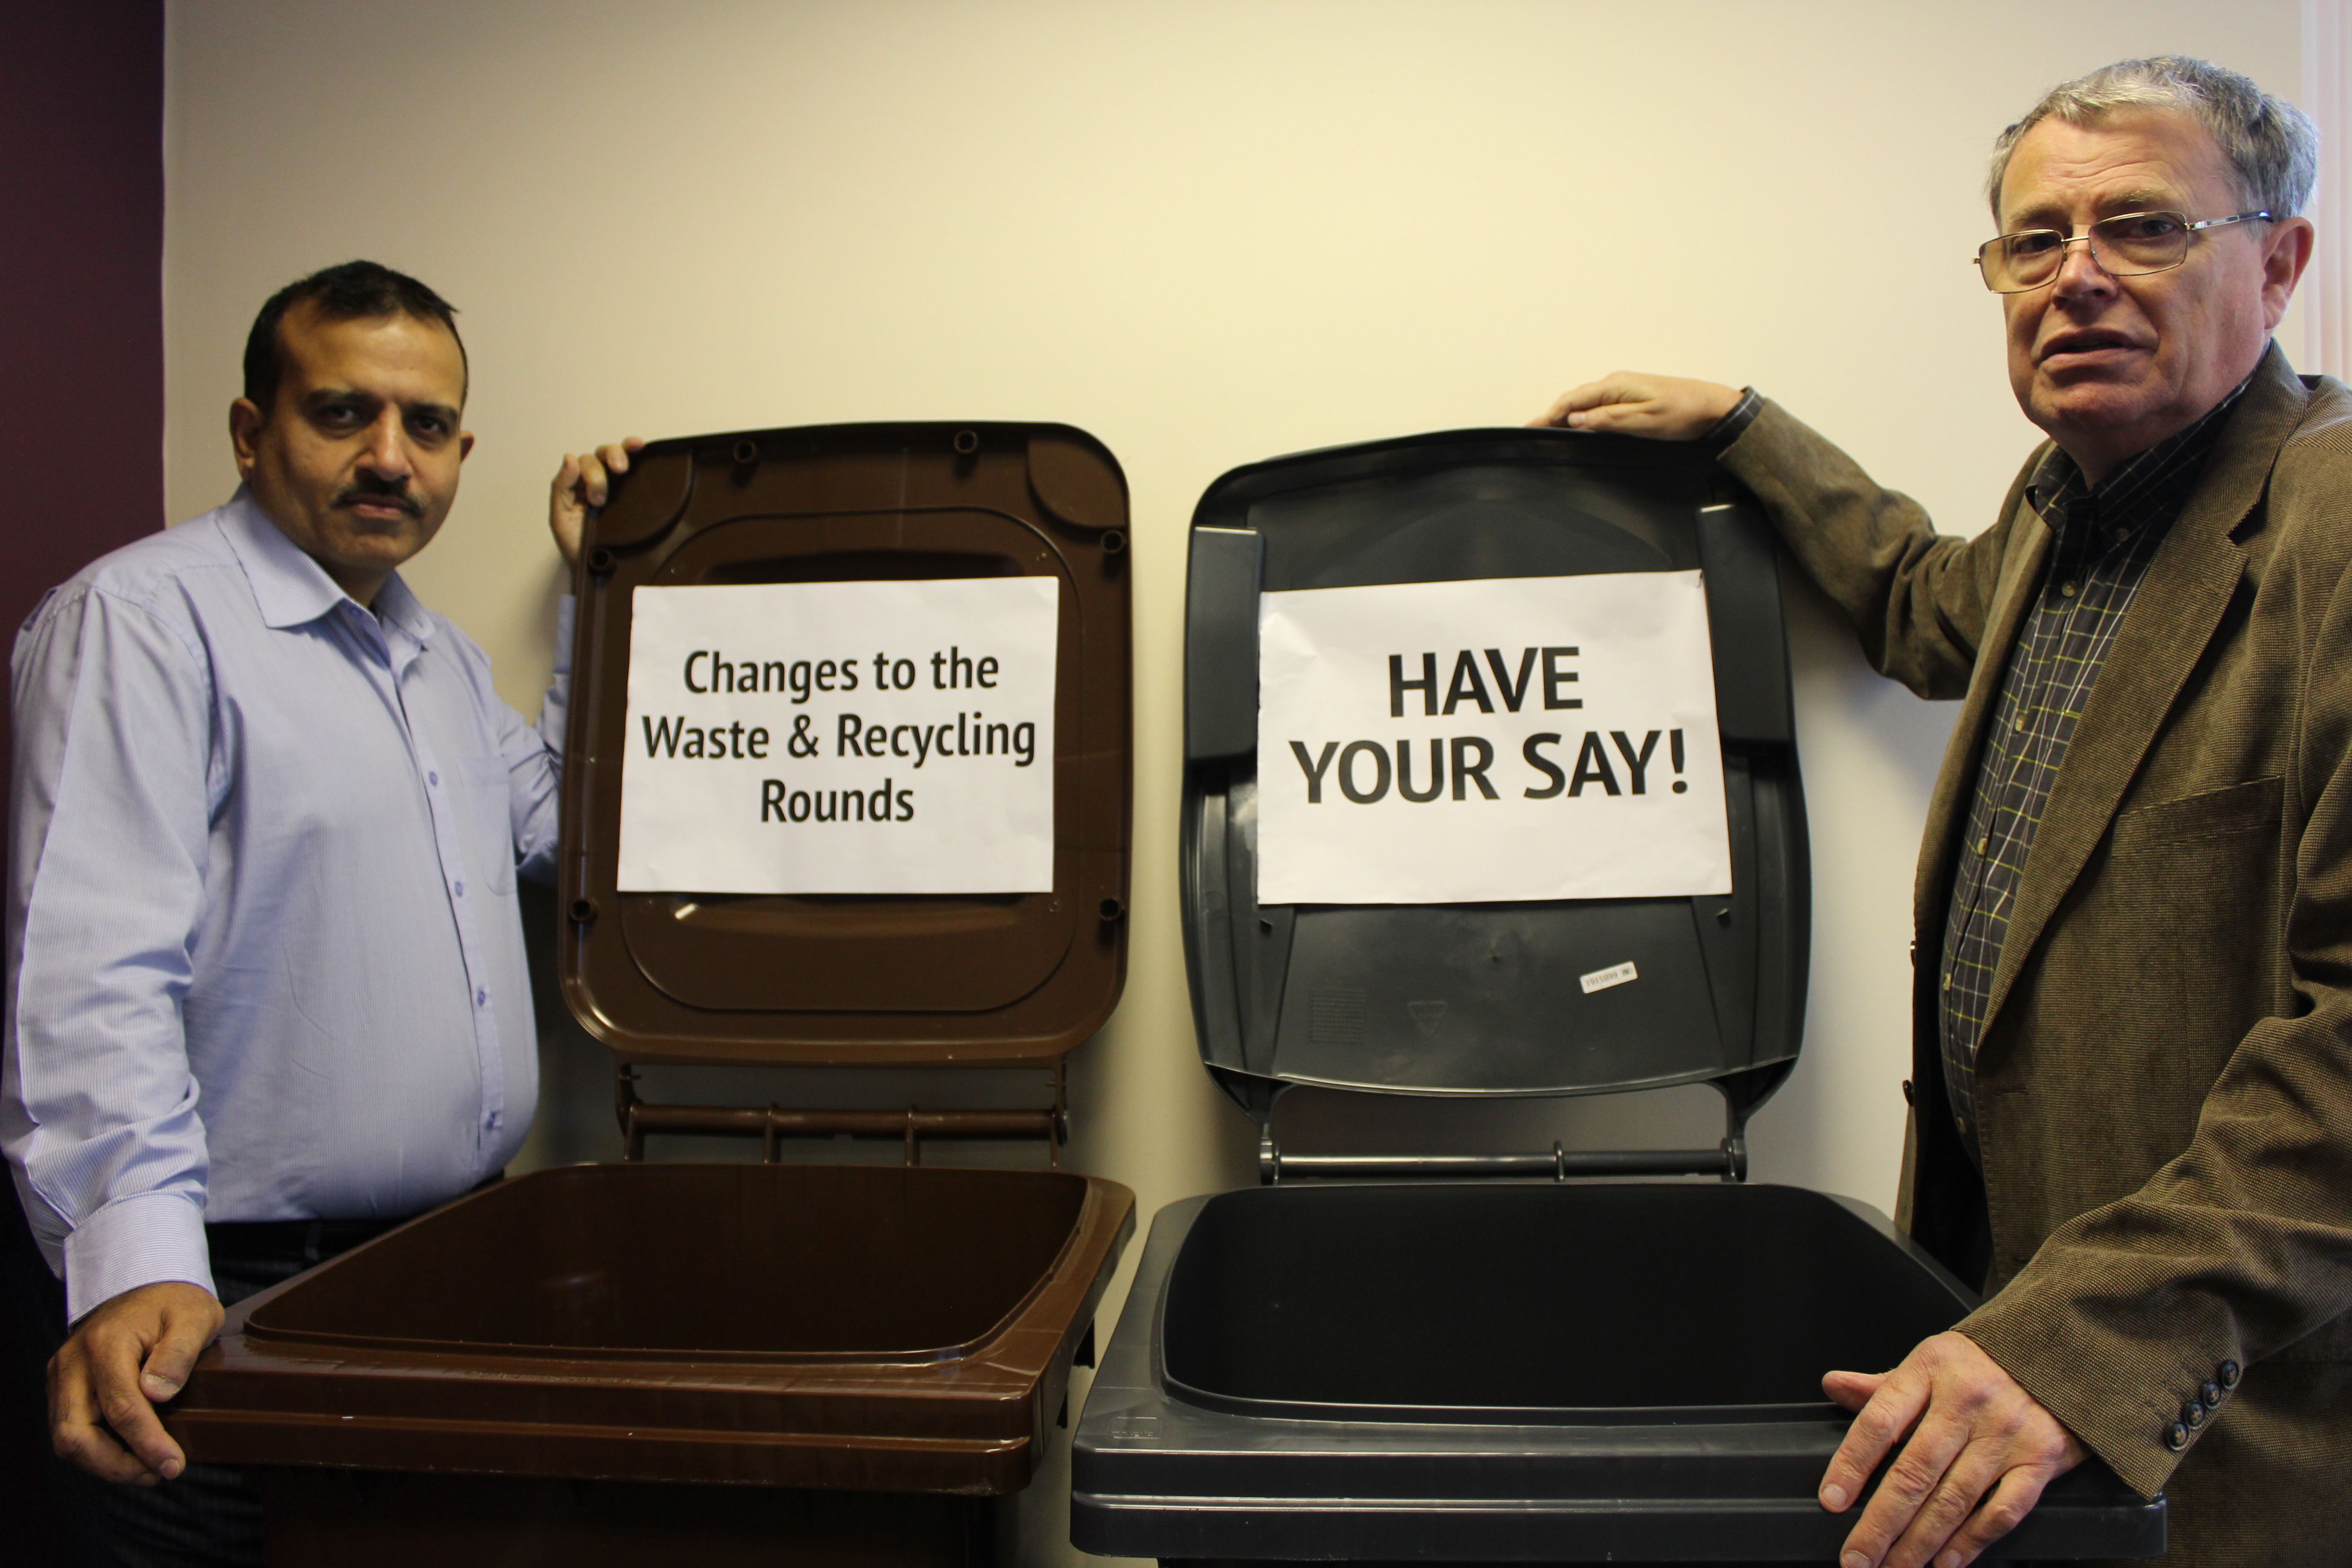 Have your say on changes to refuse and recycling collections!